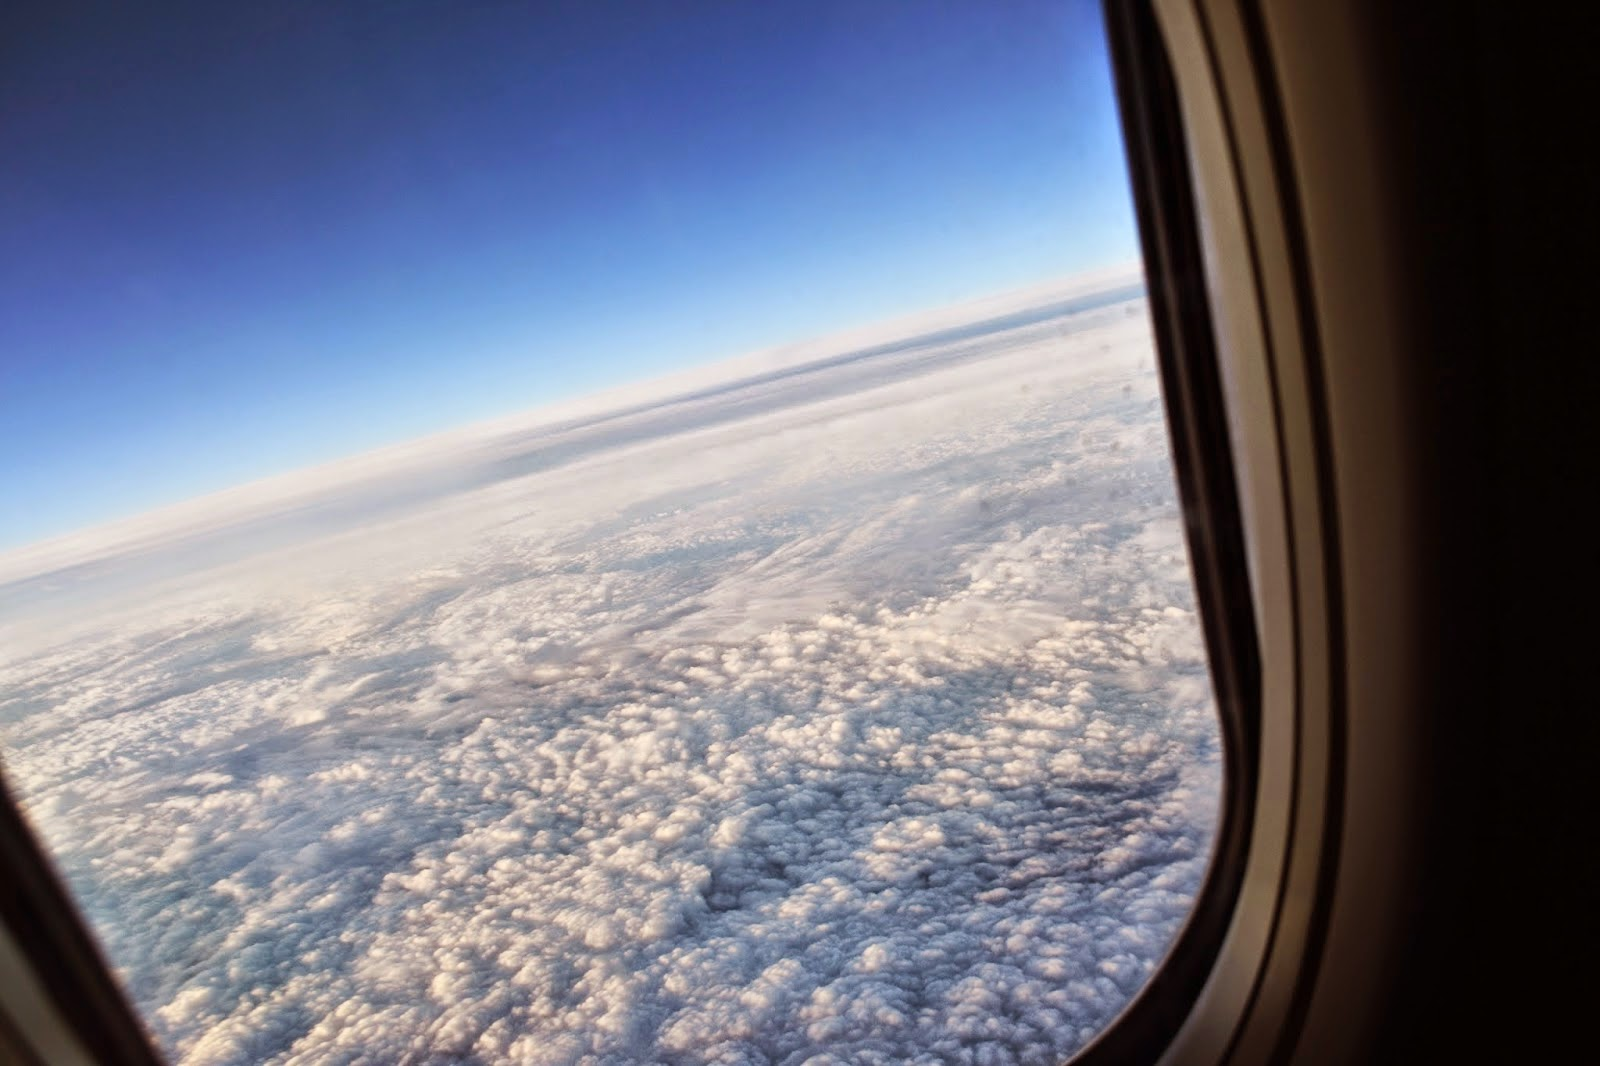 Looking out my airplane window at the clouds below on my way to turkey